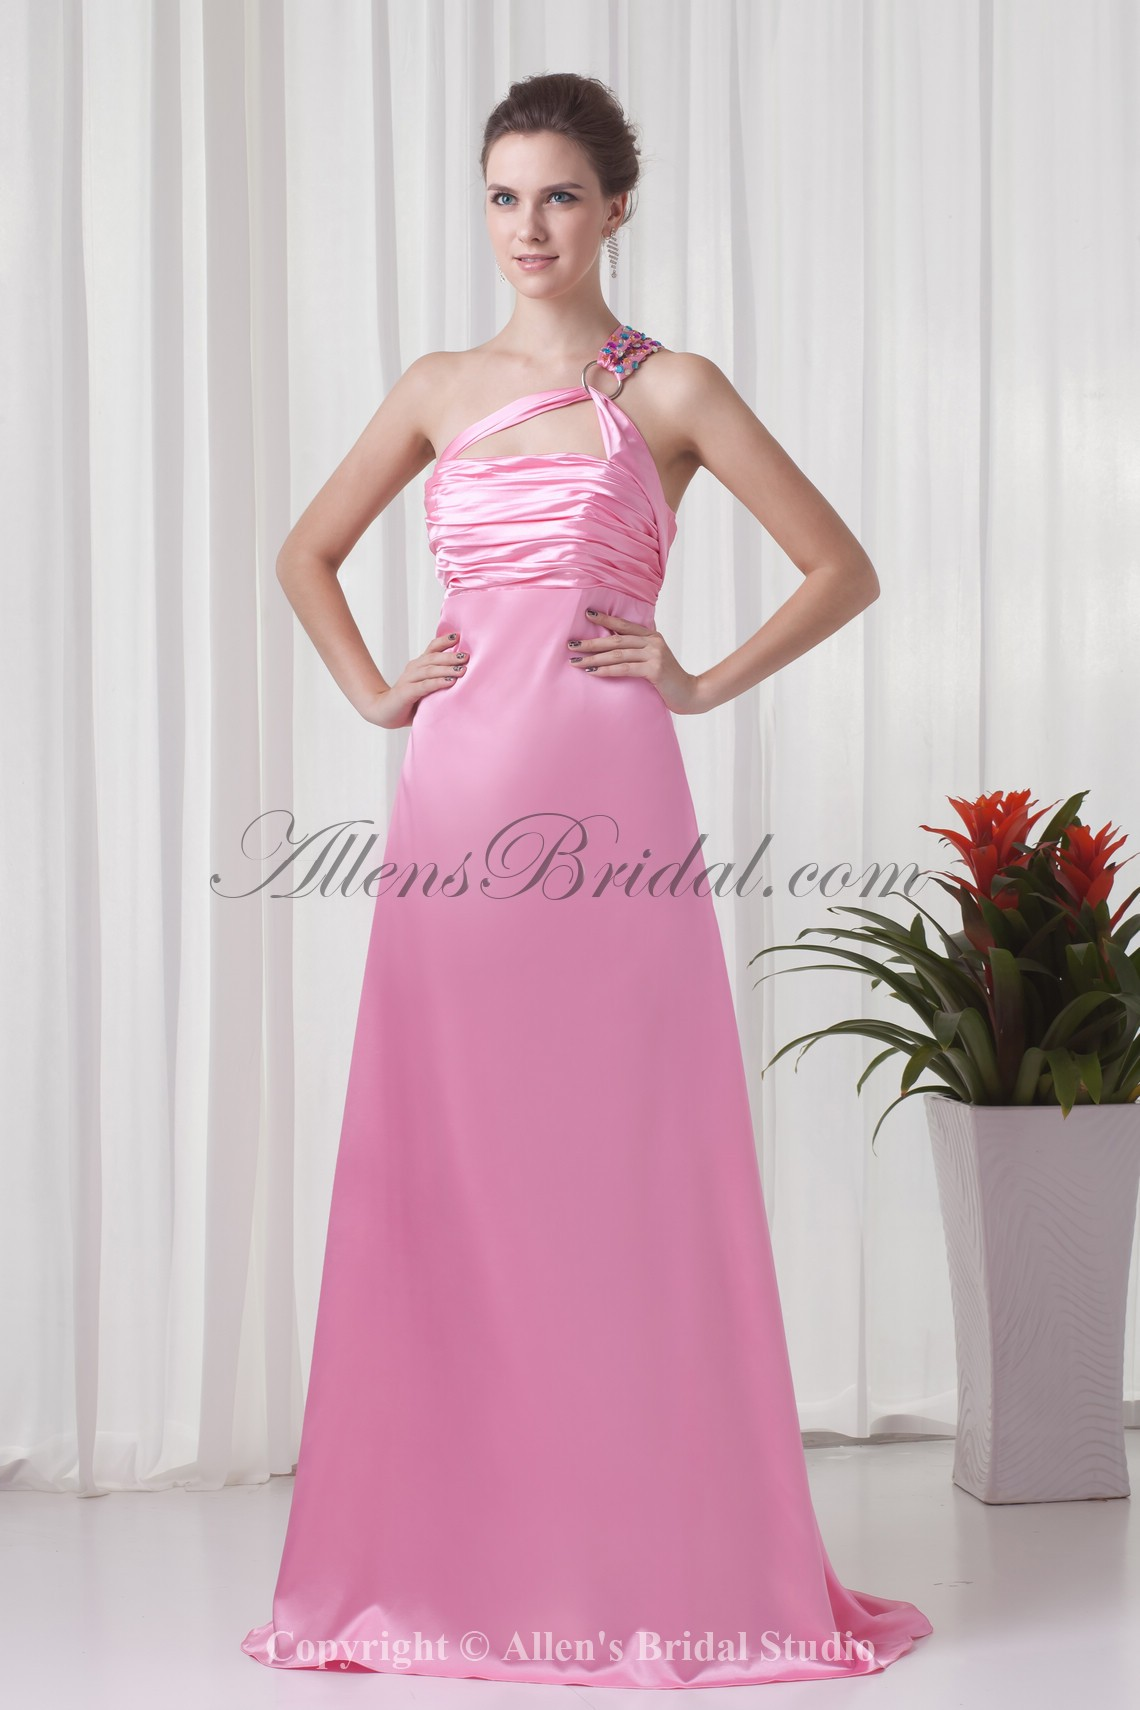 /302-2411/satin-one-shoulder-neckline-a-line-sweep-train-directionally-ruched-prom-dress.jpg